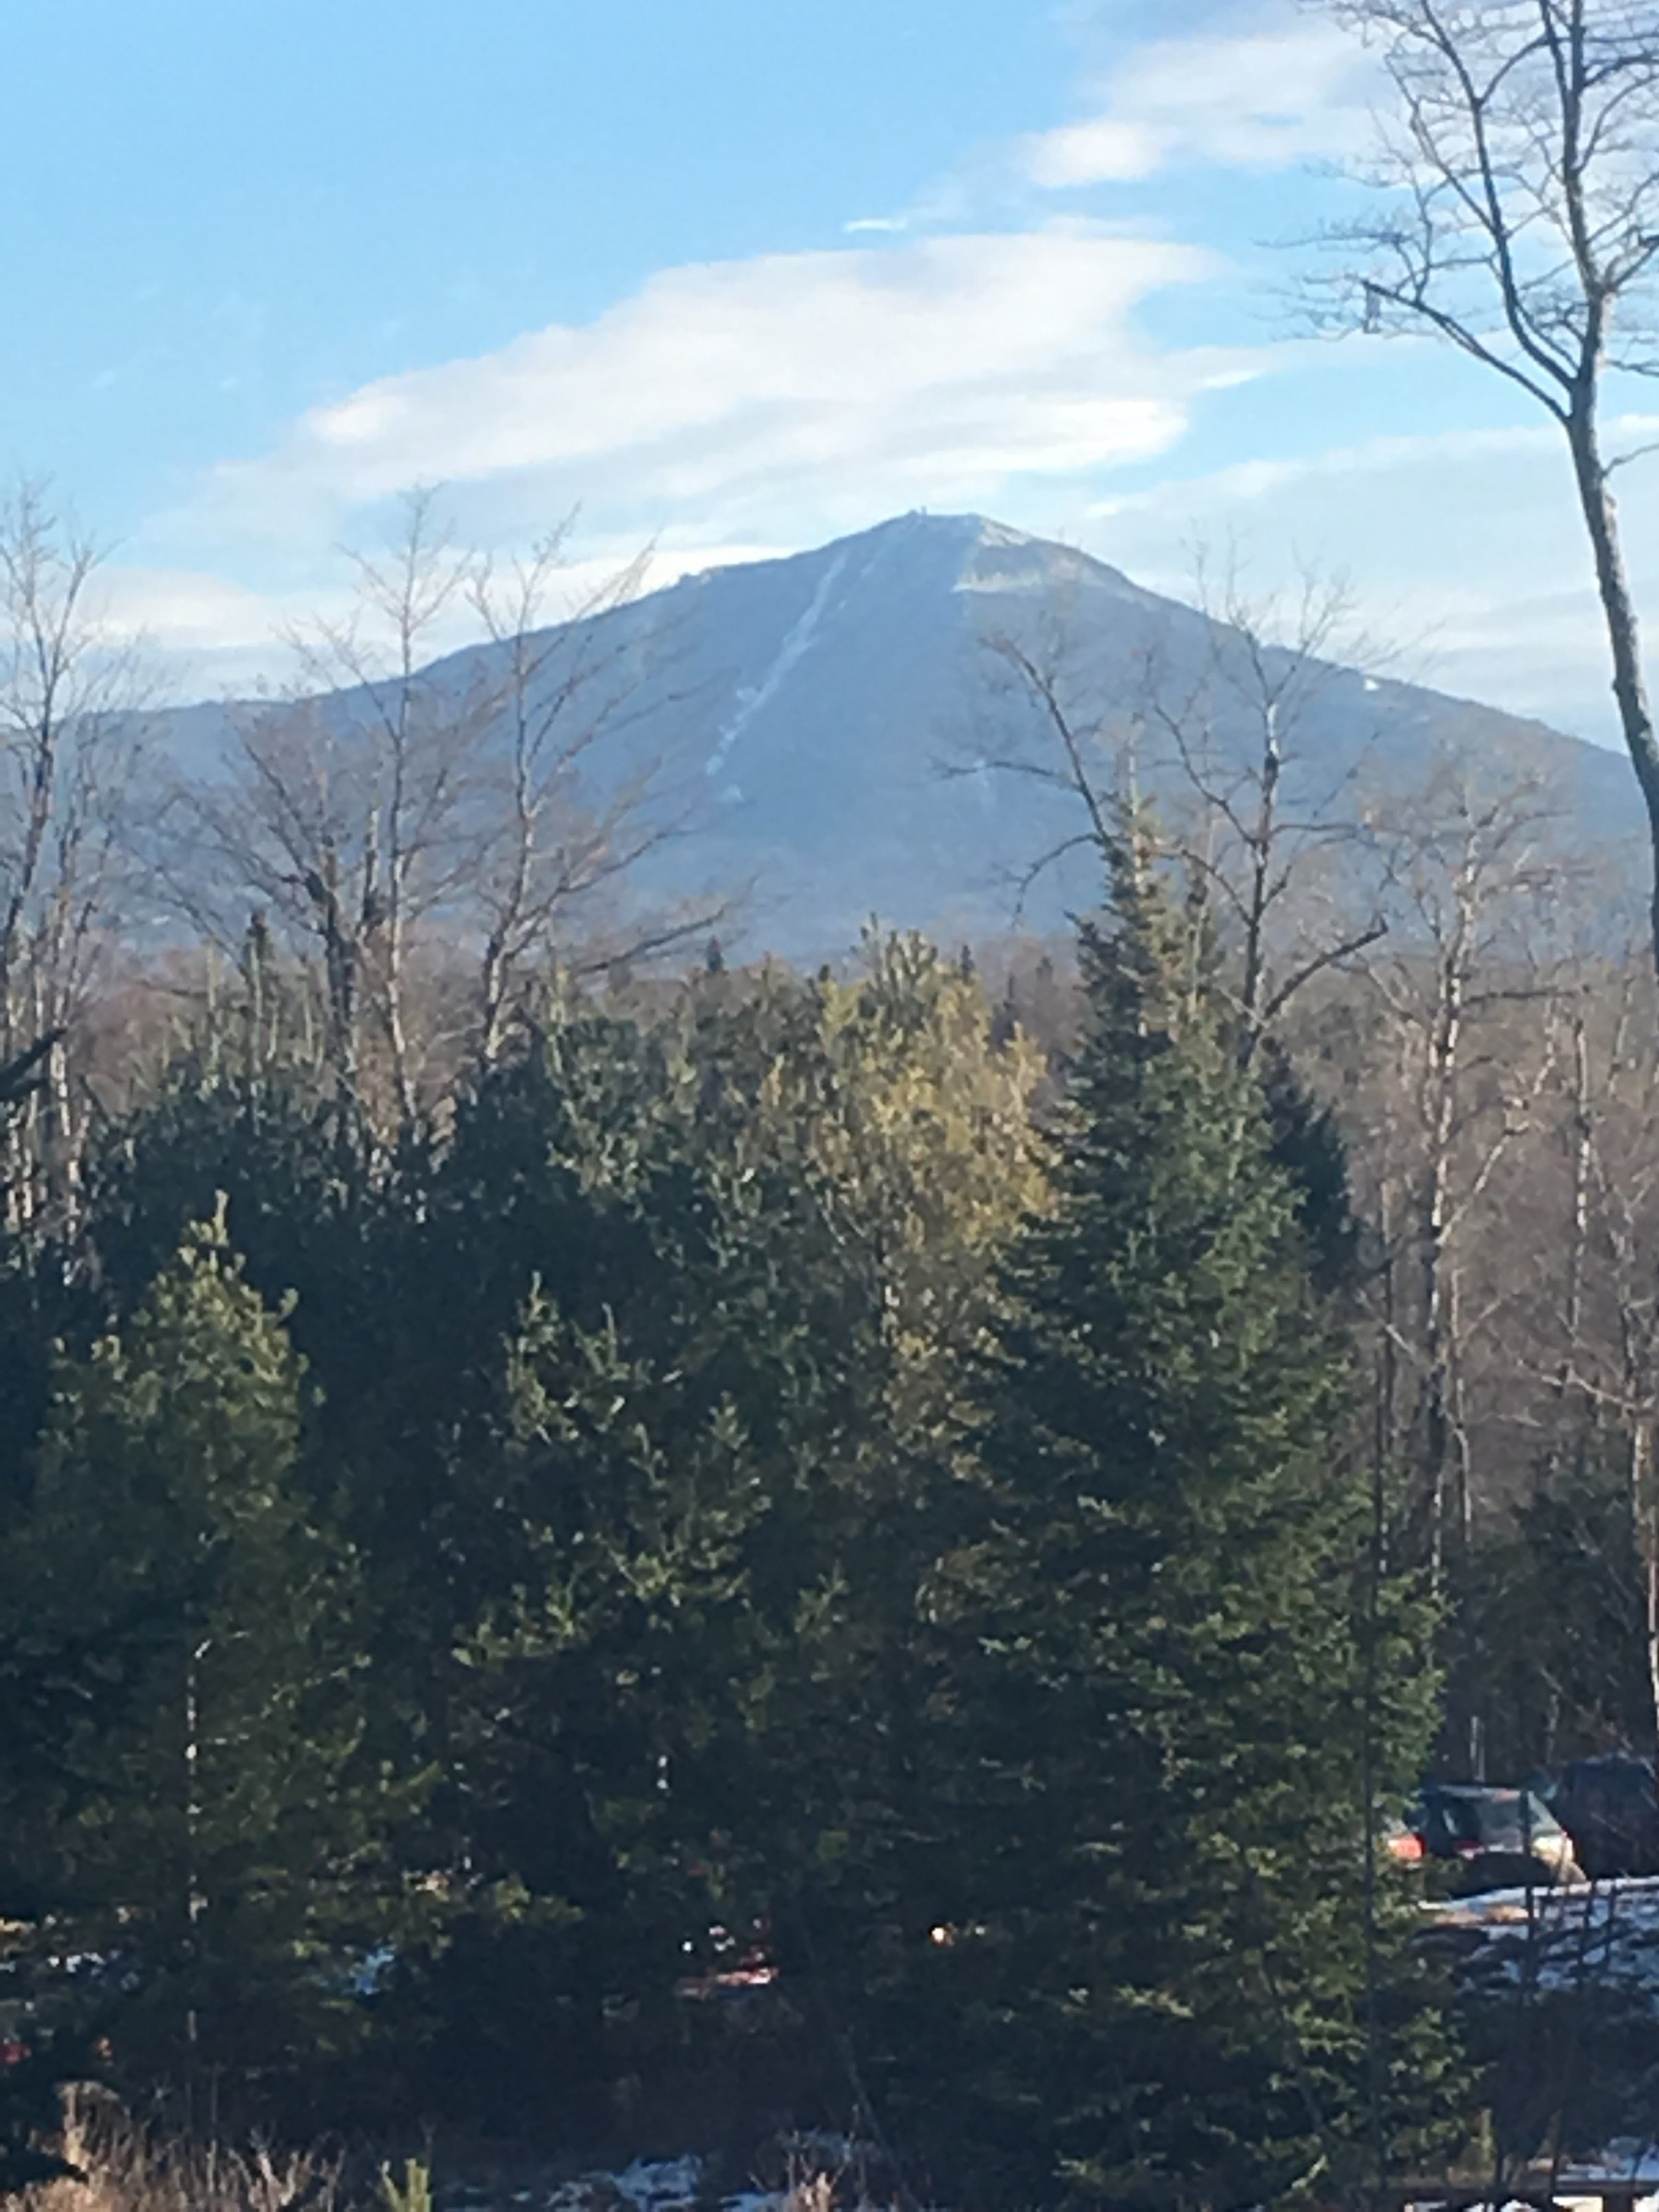 Whiteface Mountain - Lake Placid, NY - Backside of the mountain; View from Whiteface Lodge balcony, Late Fall 2017